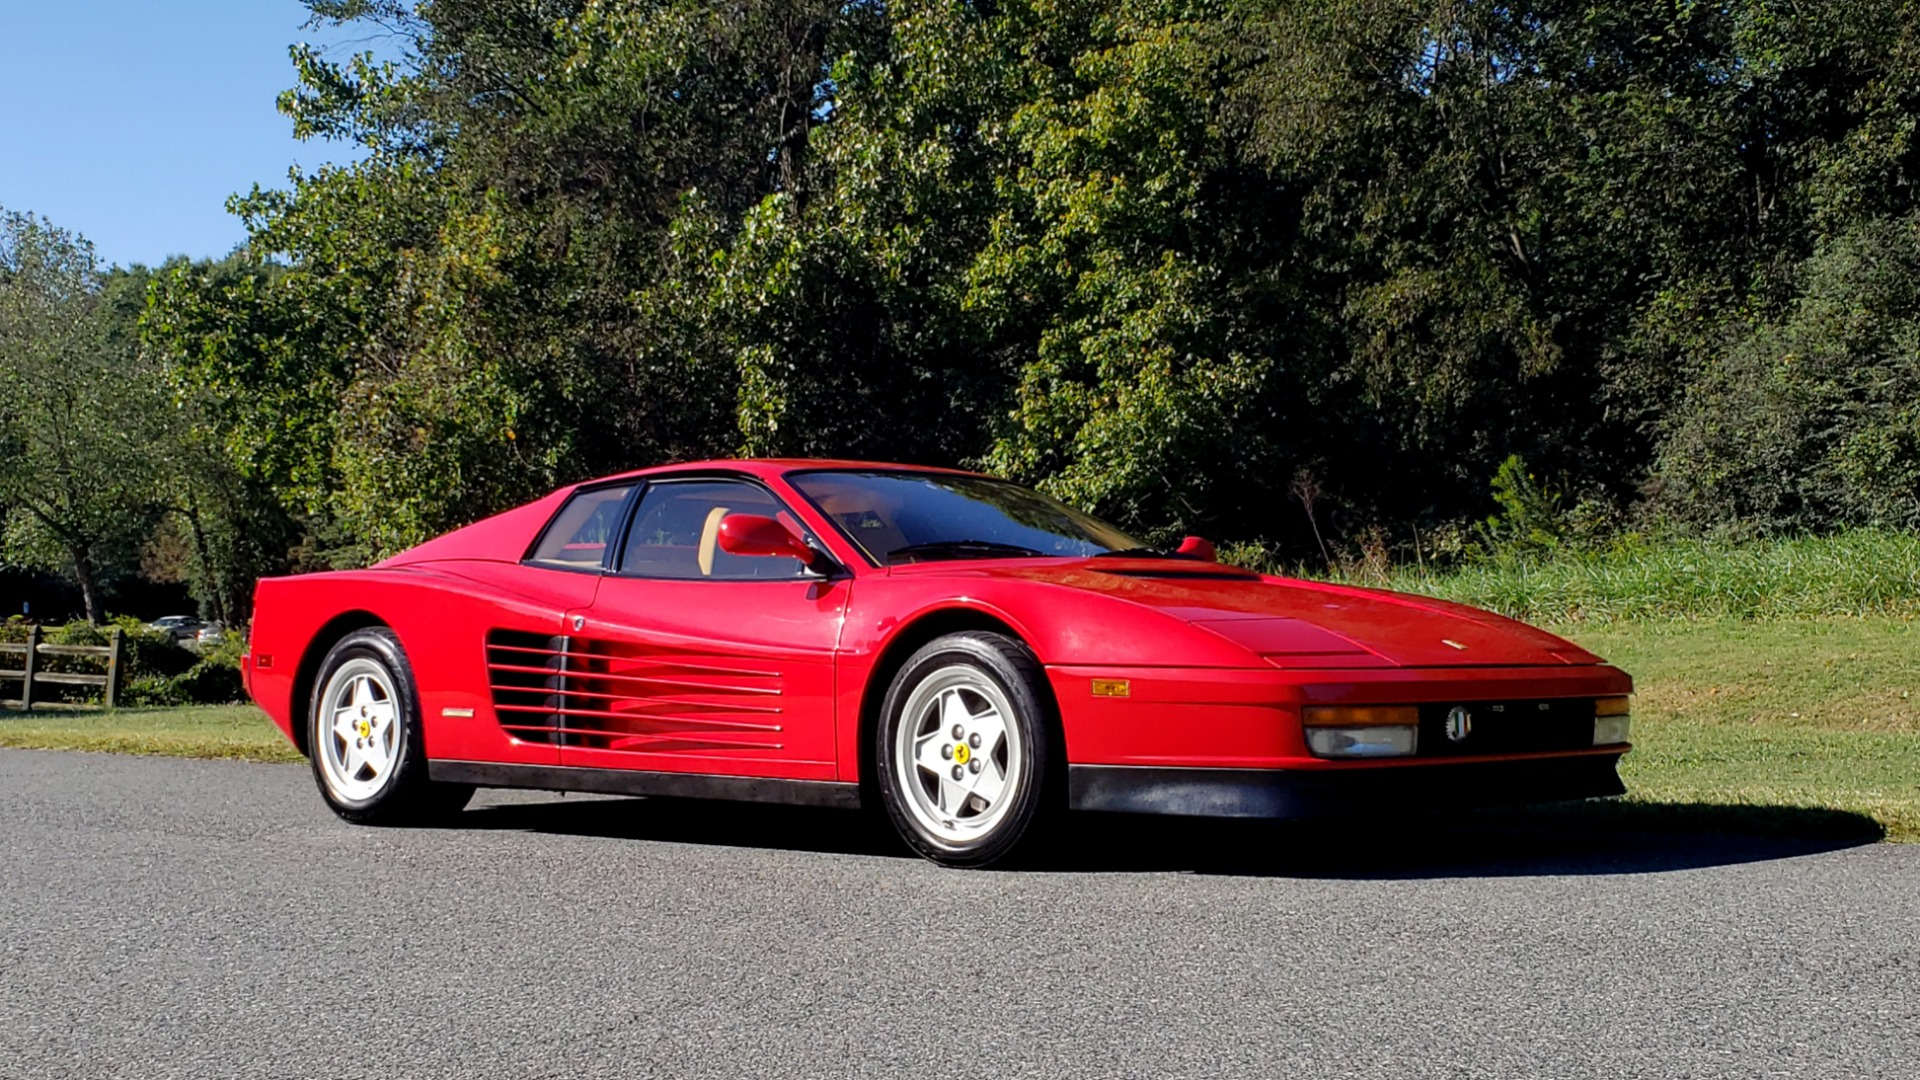 Used 1988 Ferrari TESTAROSSA COUPE / 4.9L FLAT-12 / 5-SPEED MANUAL / LOW MILES SUPER CLEAN for sale $128,999 at Formula Imports in Charlotte NC 28227 12